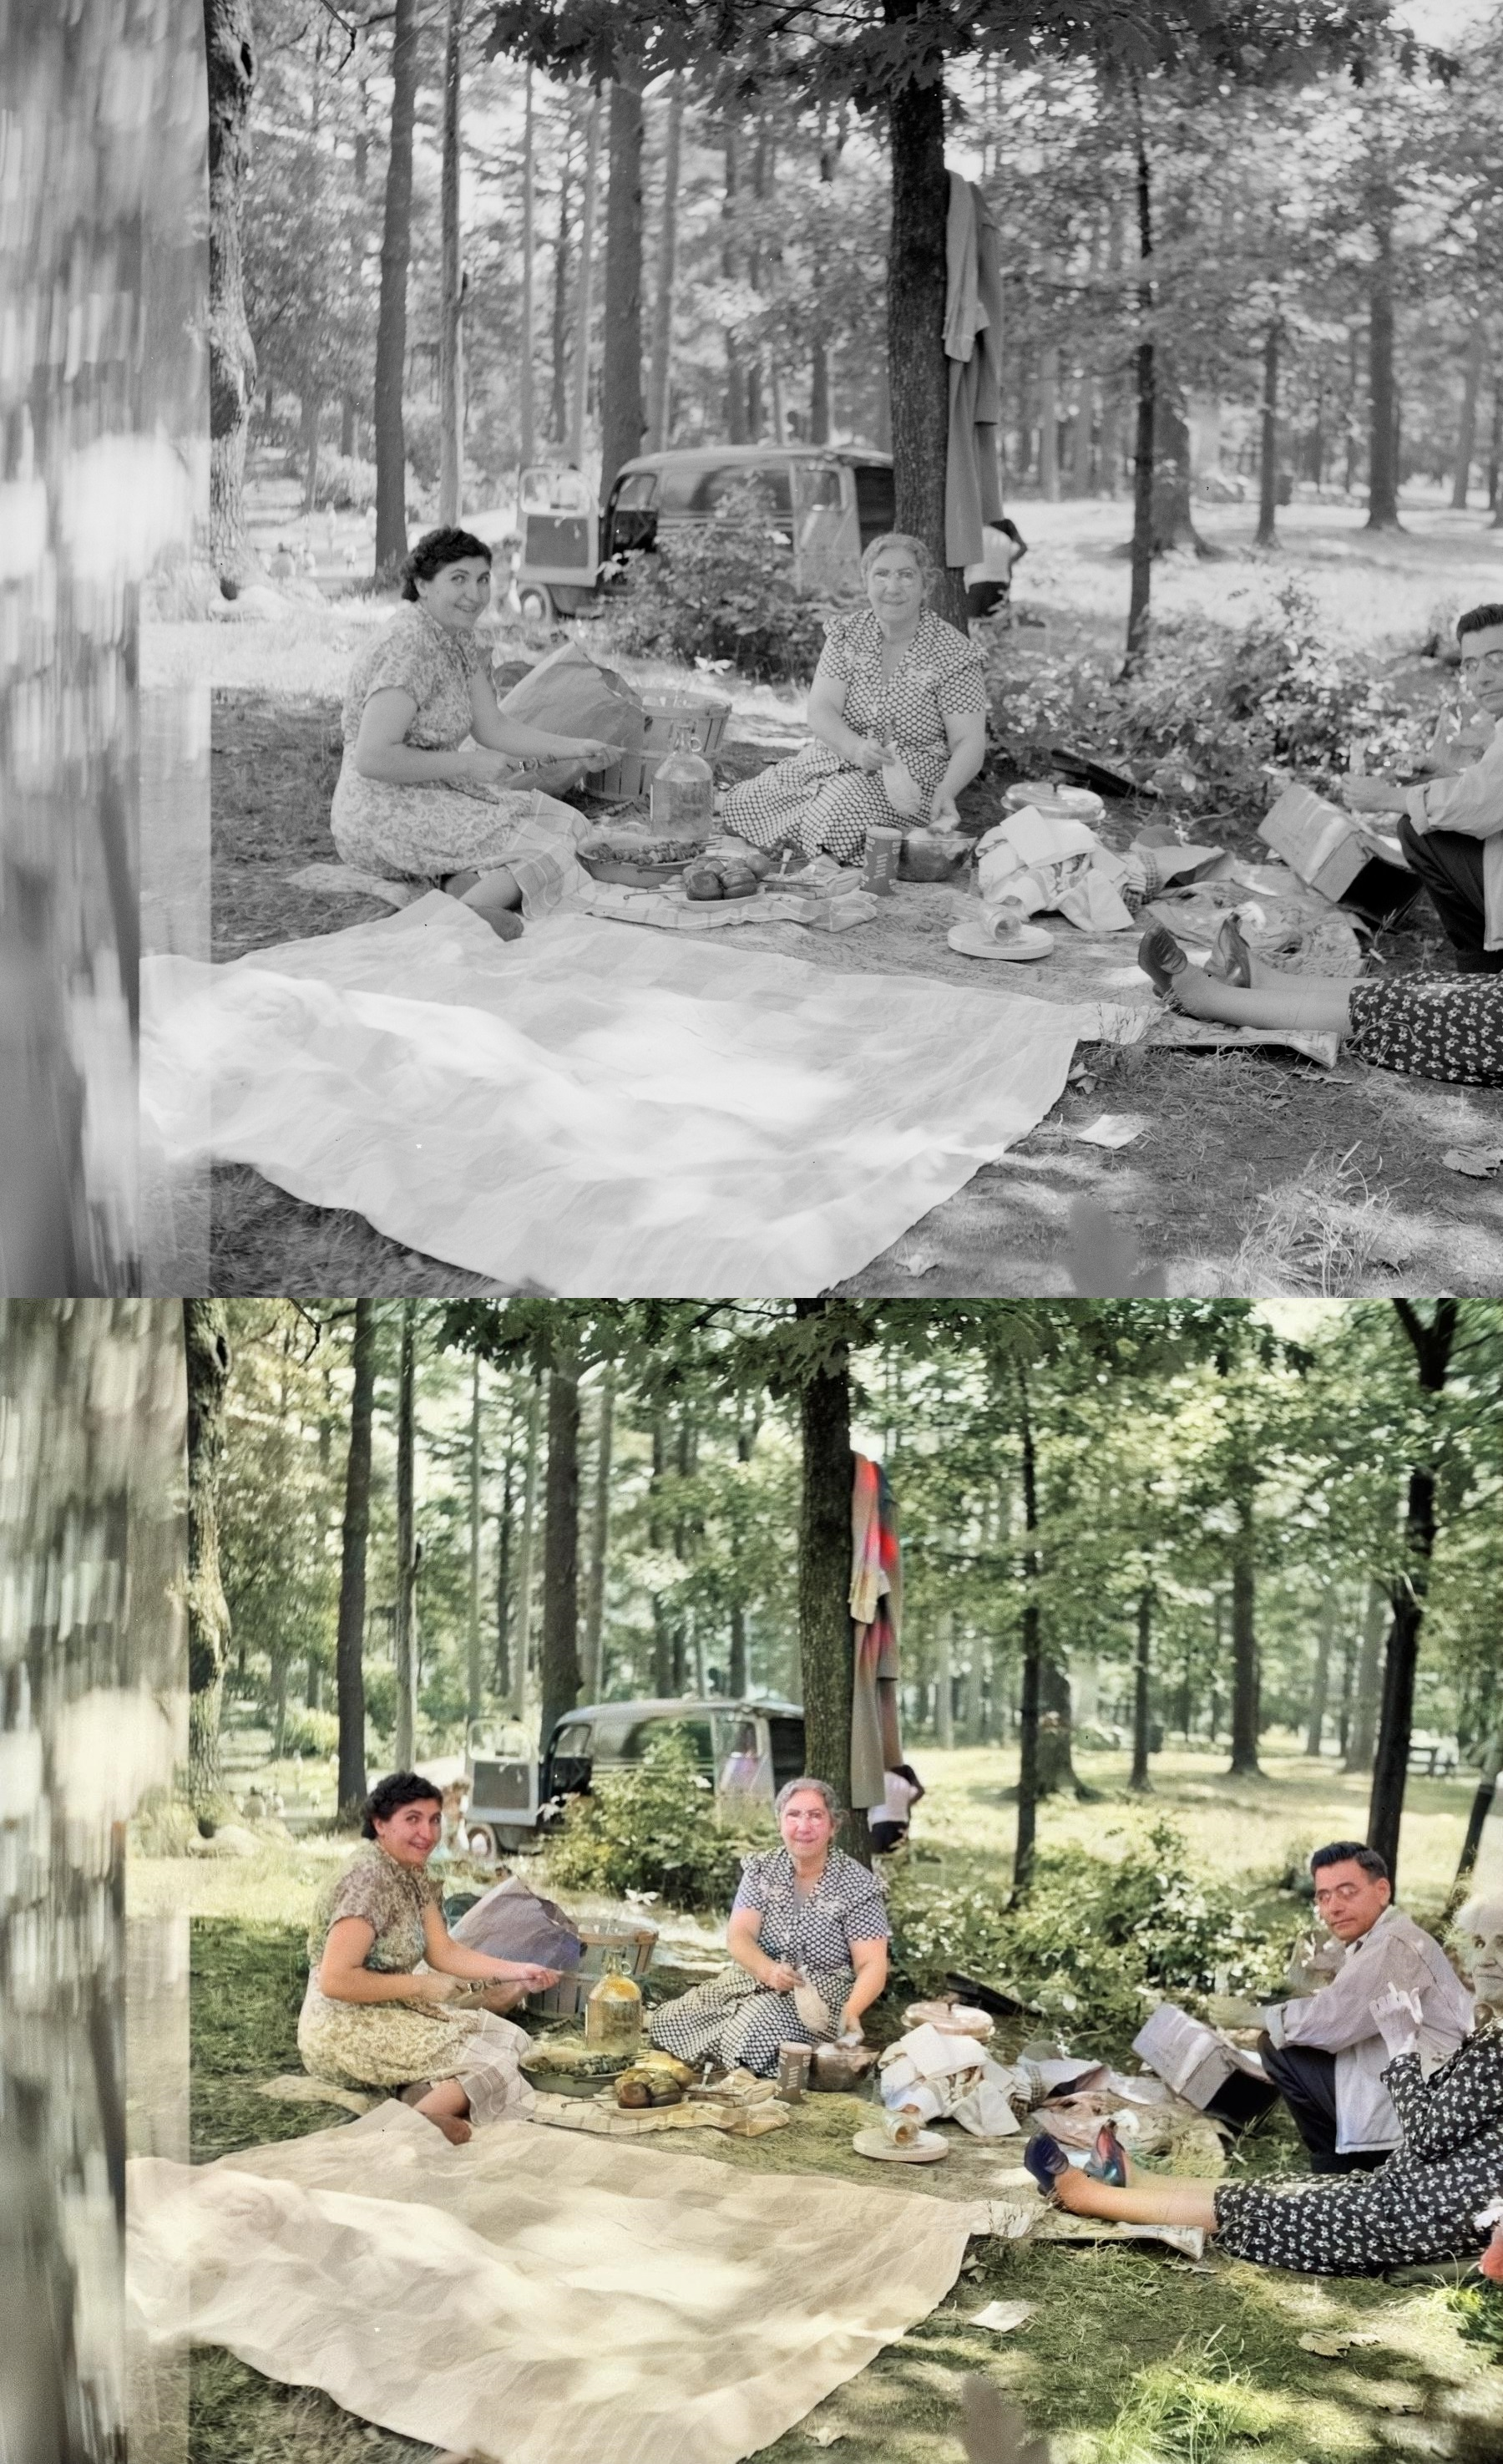 Color Restore,  Colorize B& W Photos and Images FAST. FREE SAMPLE BEFORE YOU ORDER TODAY